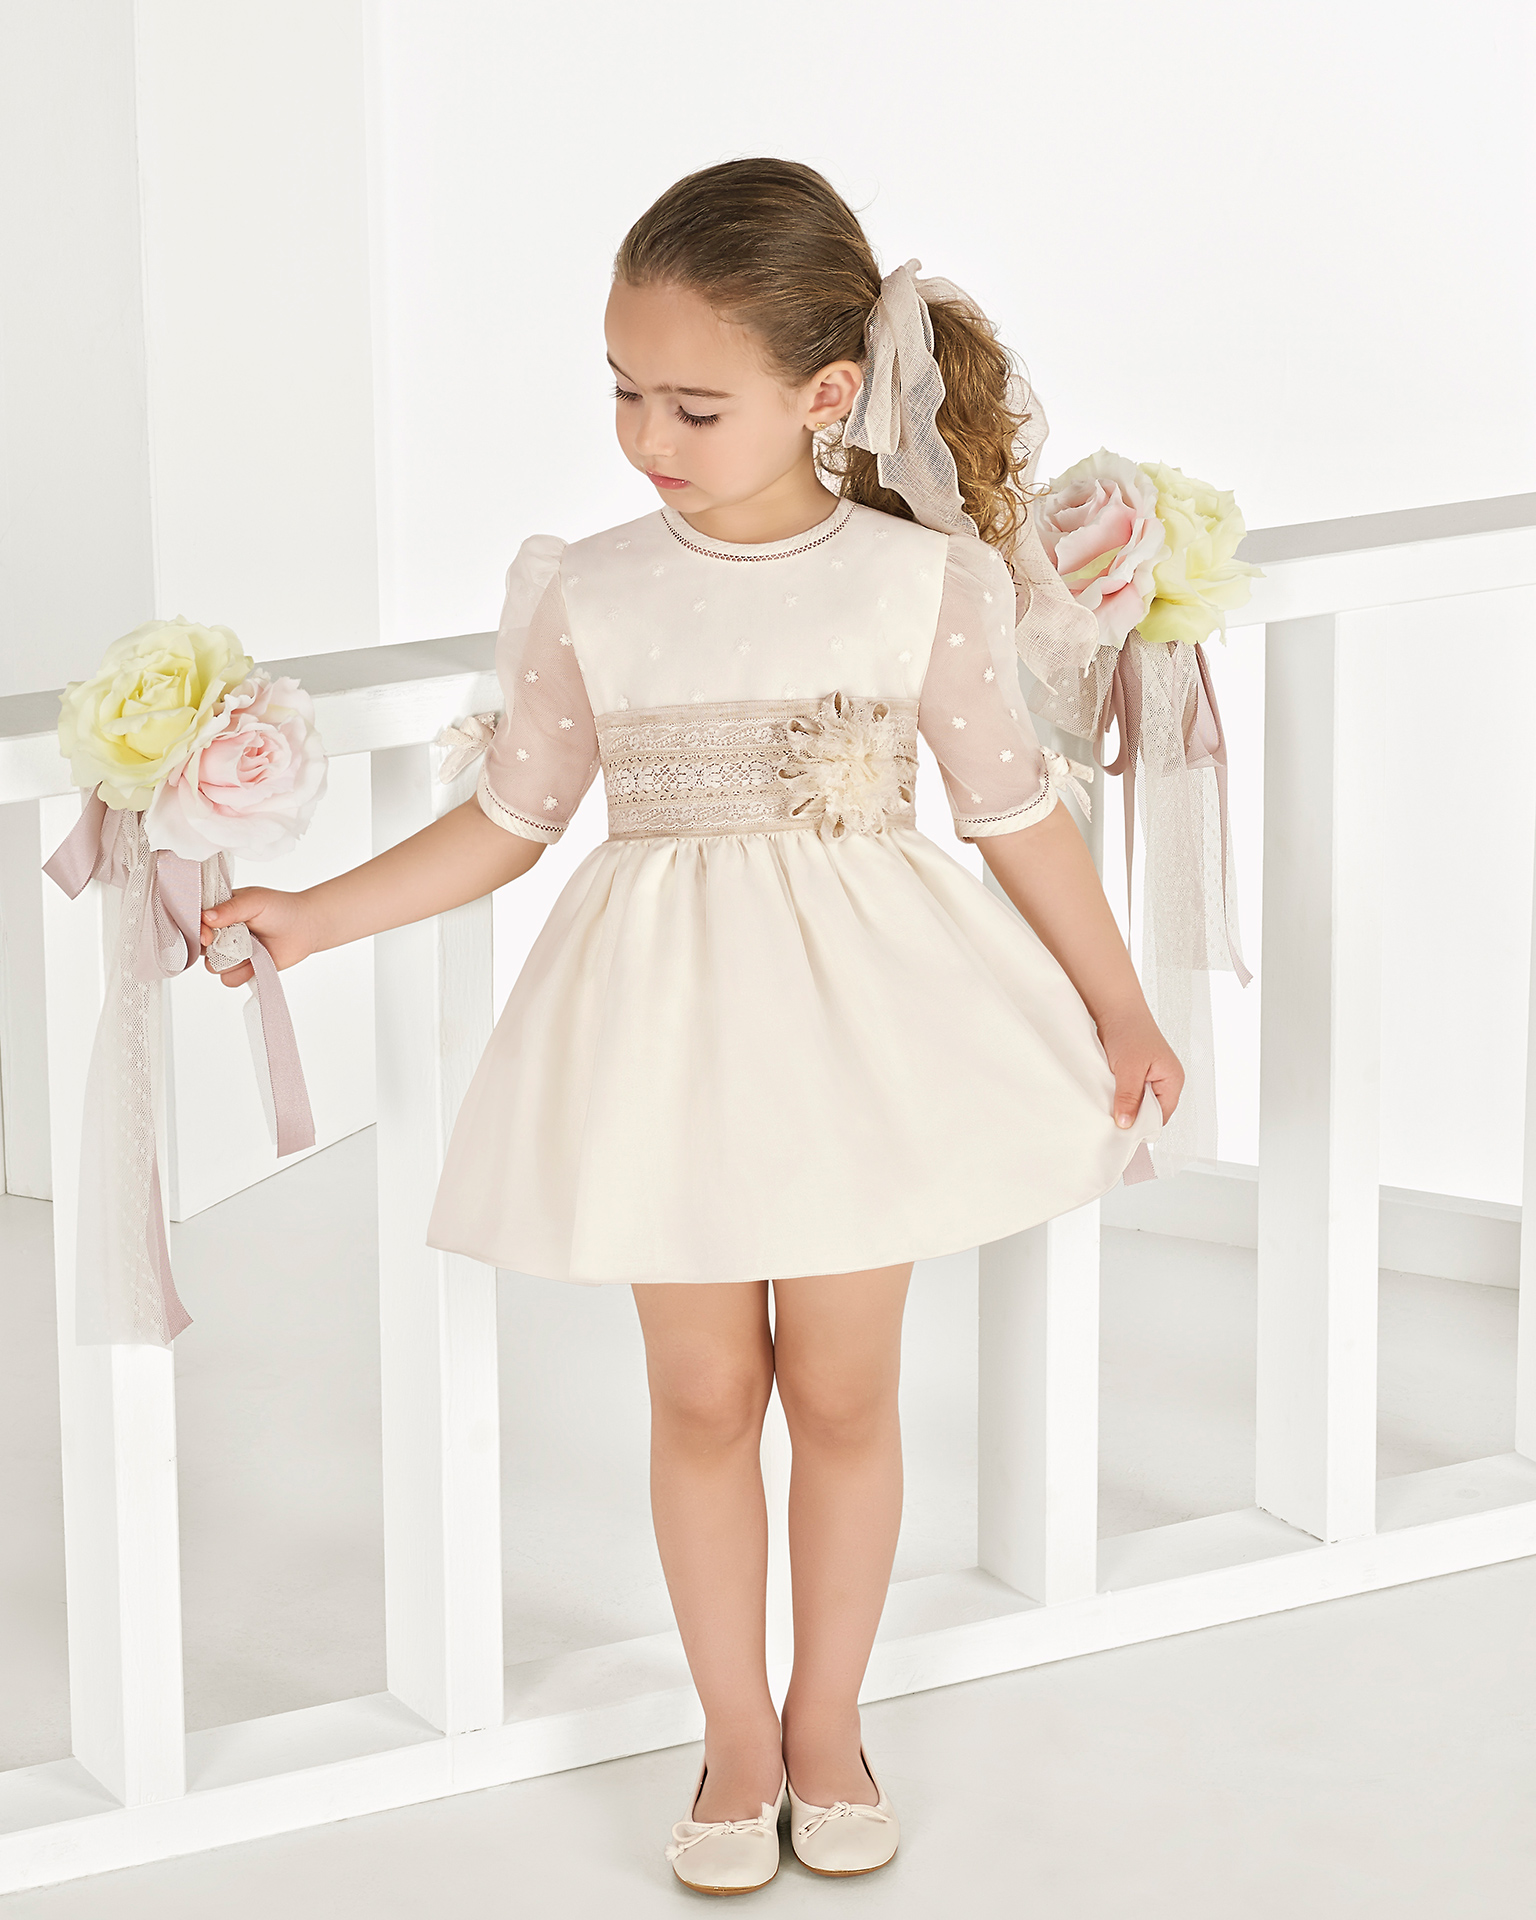 Ballgown-style matt organza First Communion or bridesmaid's dress, in ivory. 2018 AIRE COMUNION Collection.